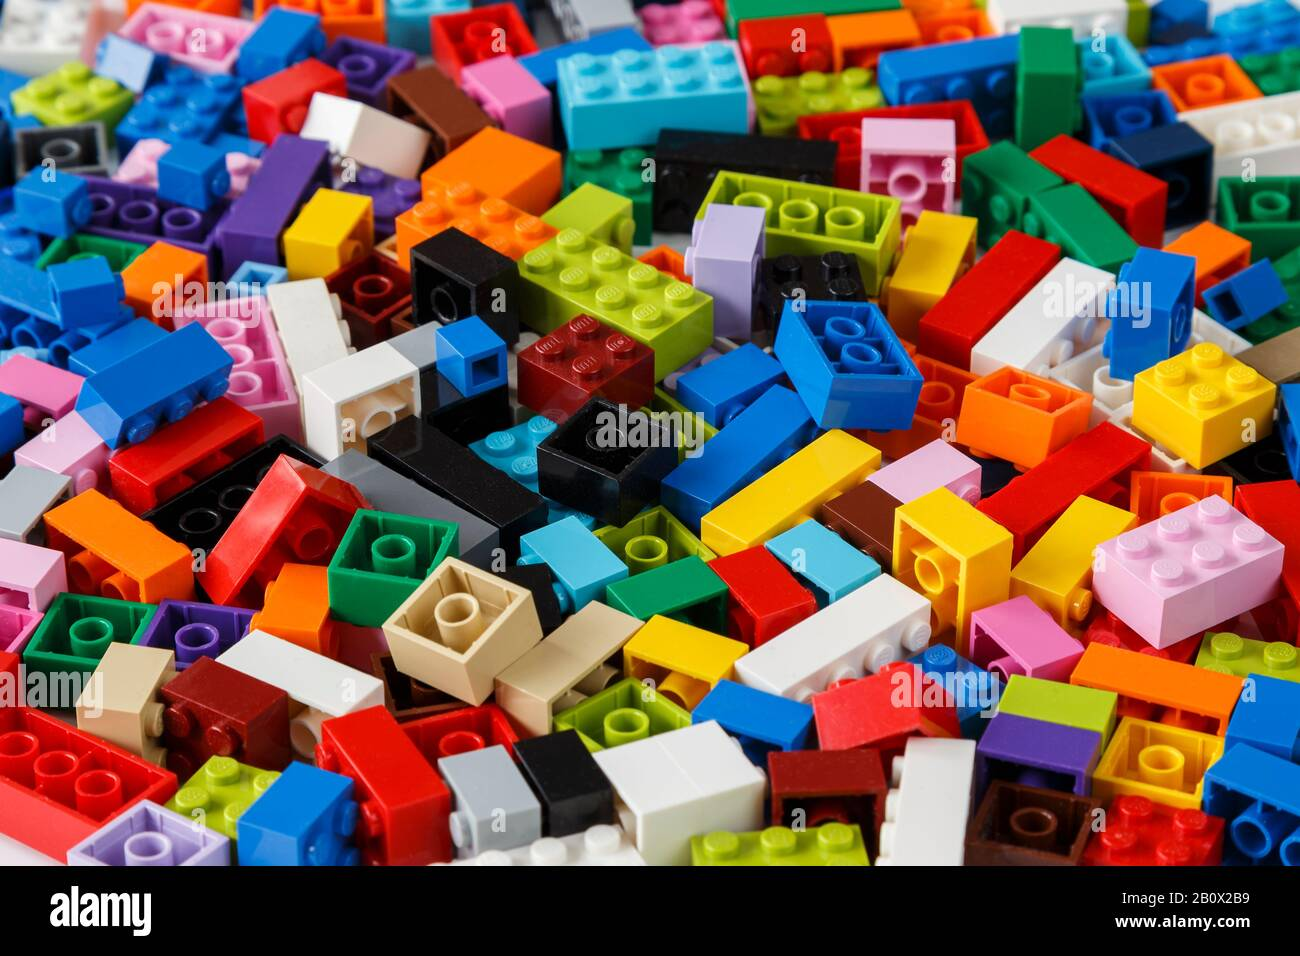 Pile Of Lego Bricks High Resolution Stock Photography And Images Alamy